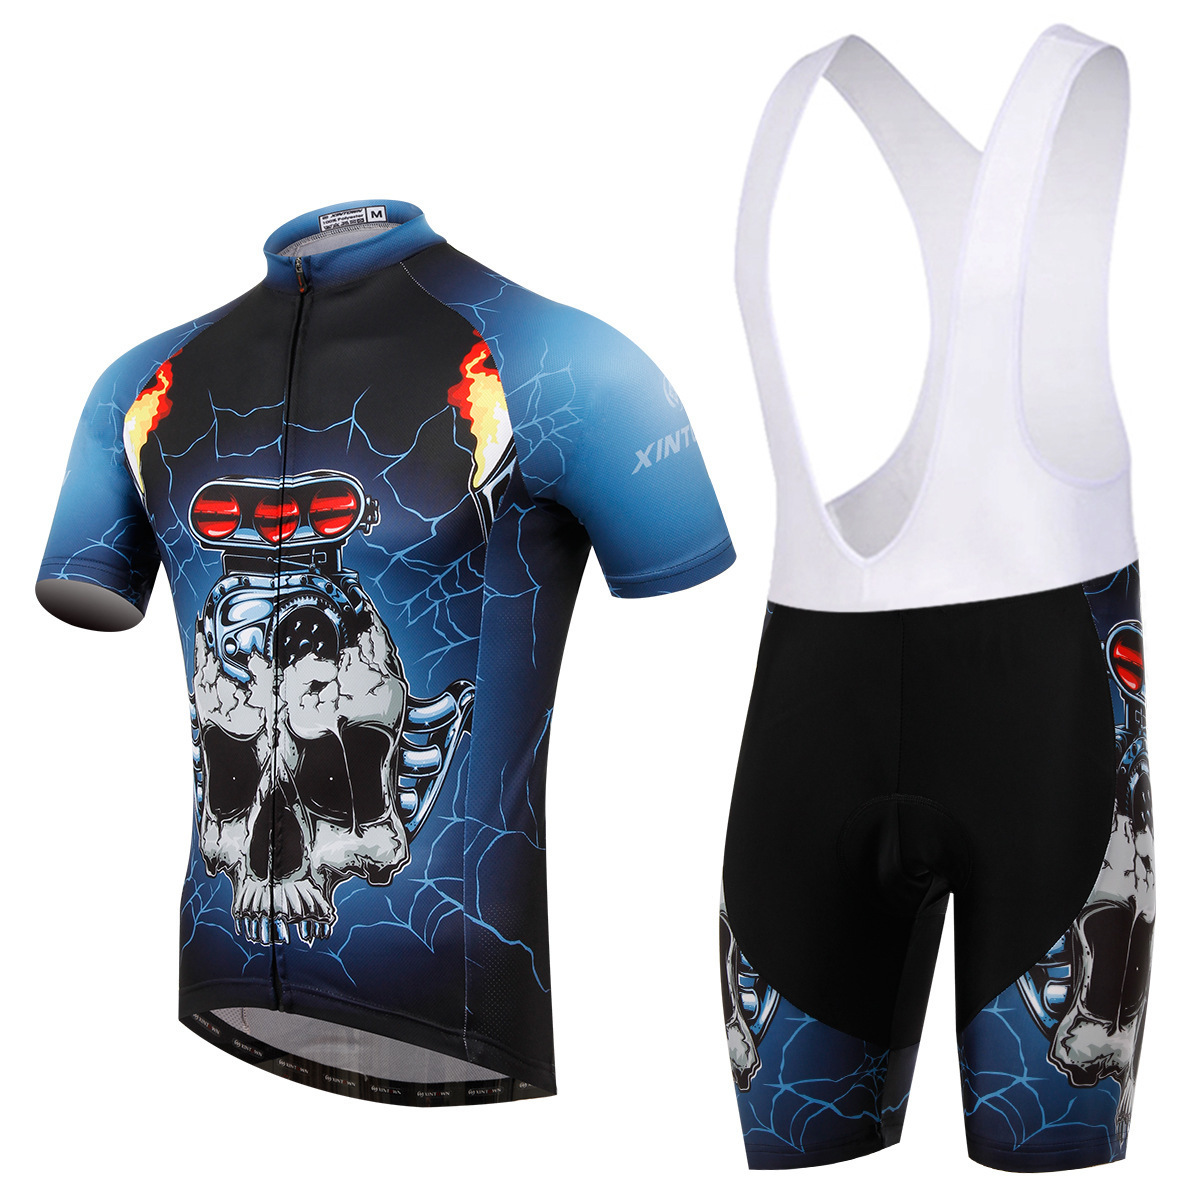 XINTOWN Pro Team Men Cycling Jersey Road Bike Bicycle Ropa Ciclismo Maillot Cycling Clothing Bib Short Outdoor Champion Clothes polyester summer breathable cycling jerseys pro team italia short sleeve bike clothing mtb ropa ciclismo bicycle maillot gel pad